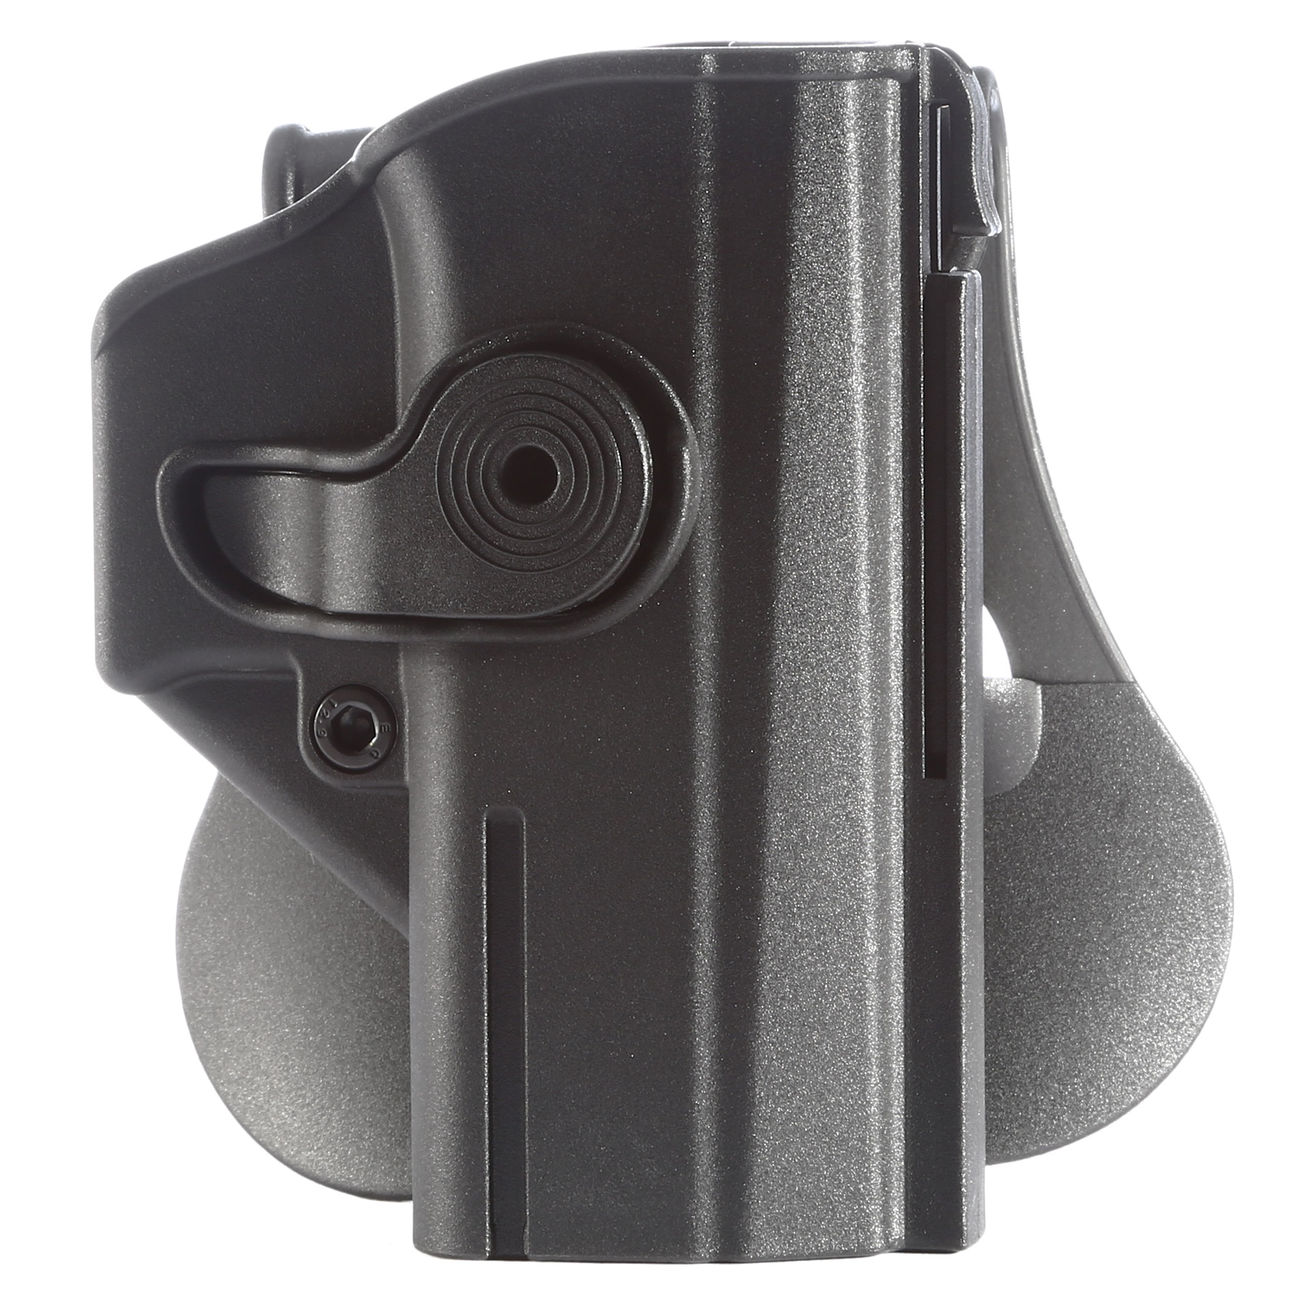 IMI Defense Level 2 Holster Kunststoff Paddle für CZ P-07 schwarz 0